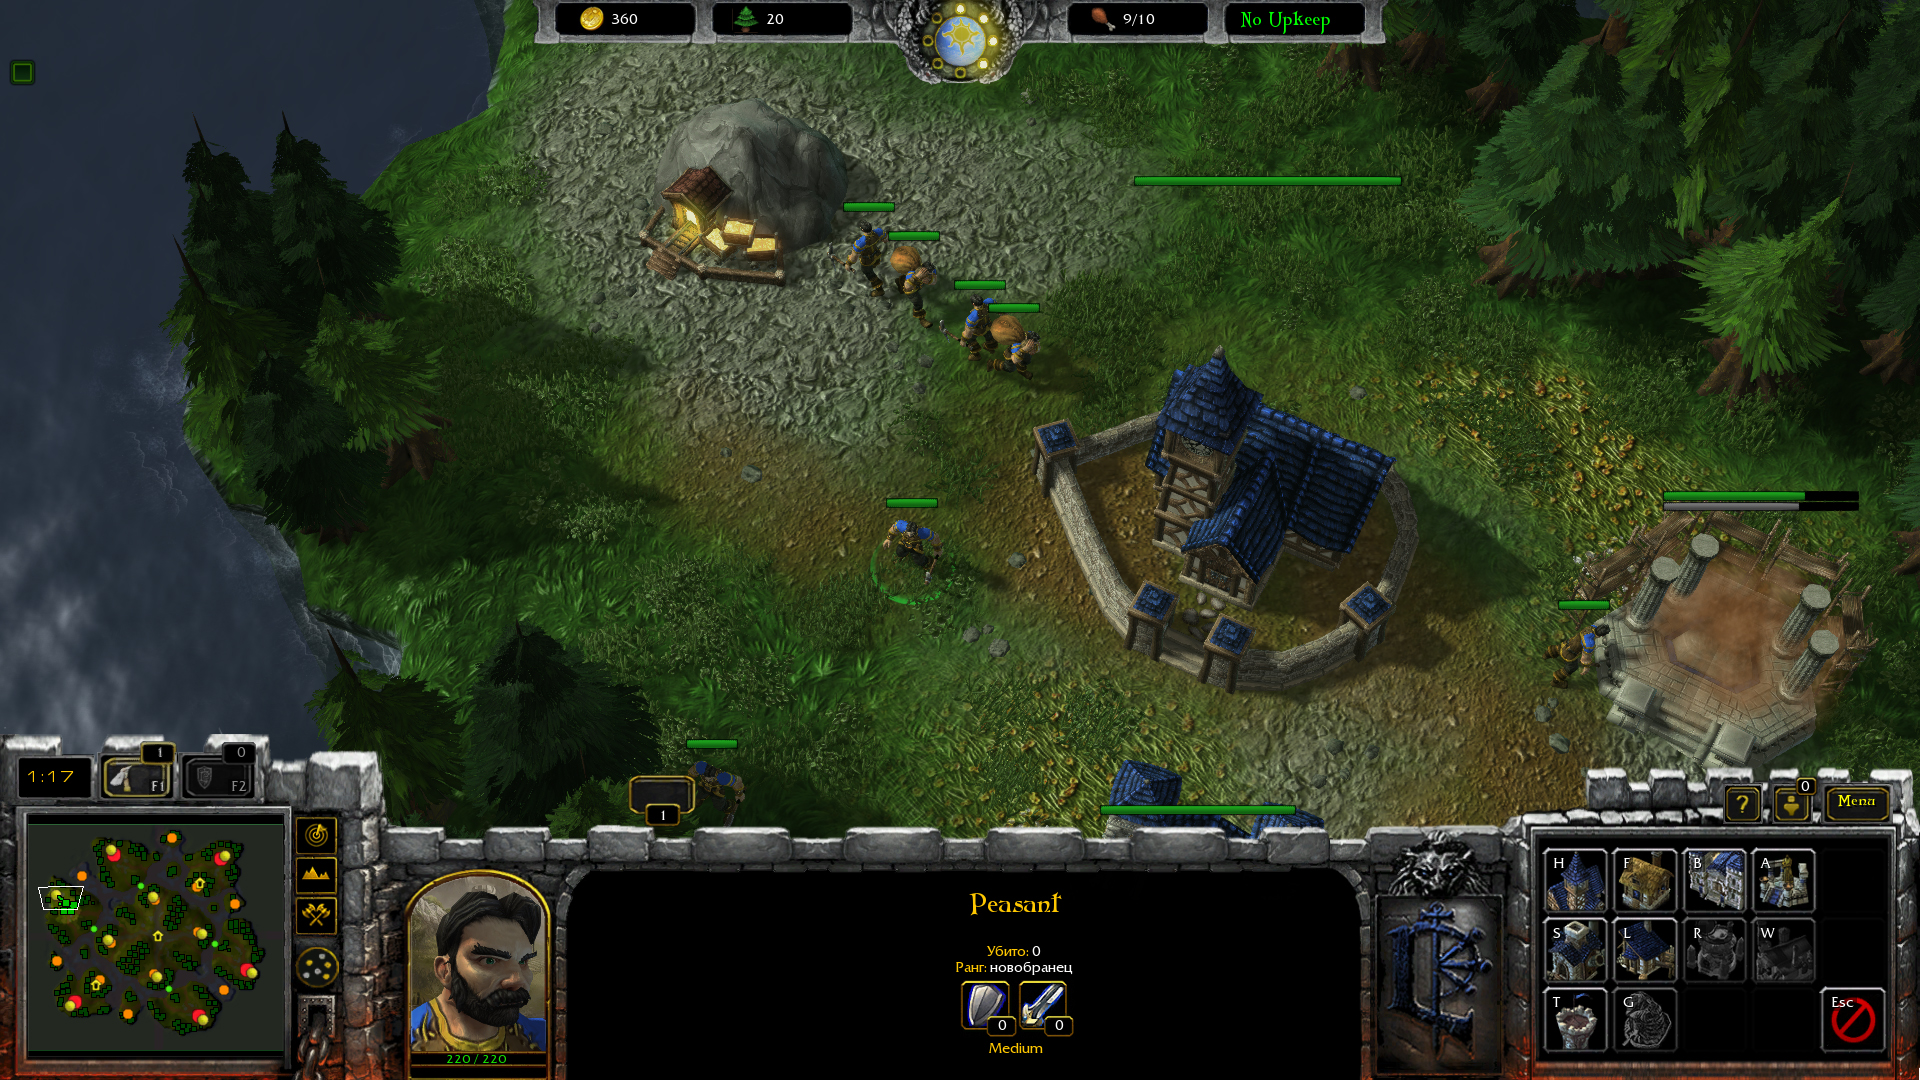 Warcraft Iii Remake Based On Wow Assets